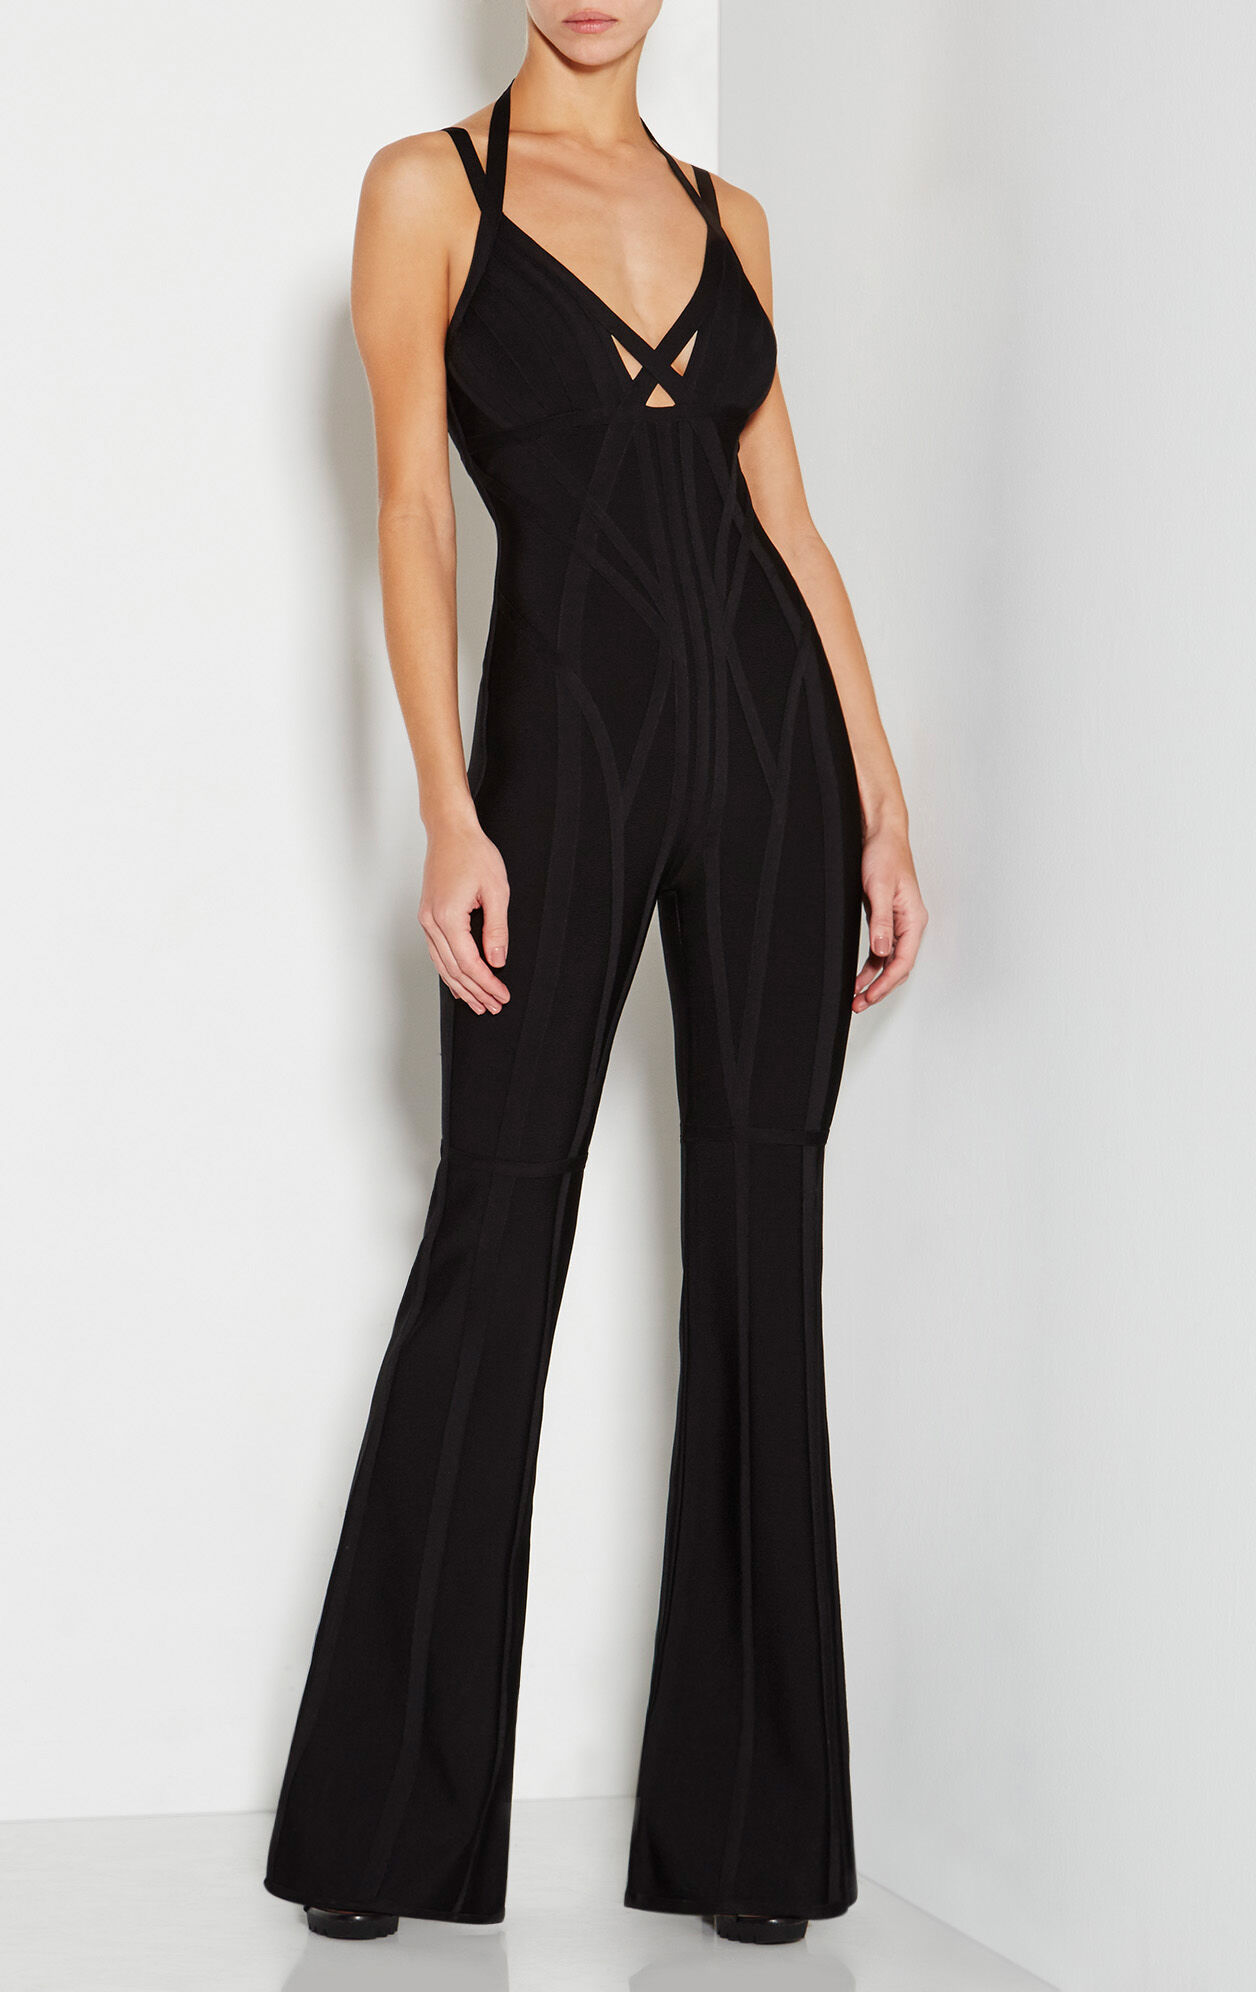 Giselle Novelty Essentials Jumpsuit